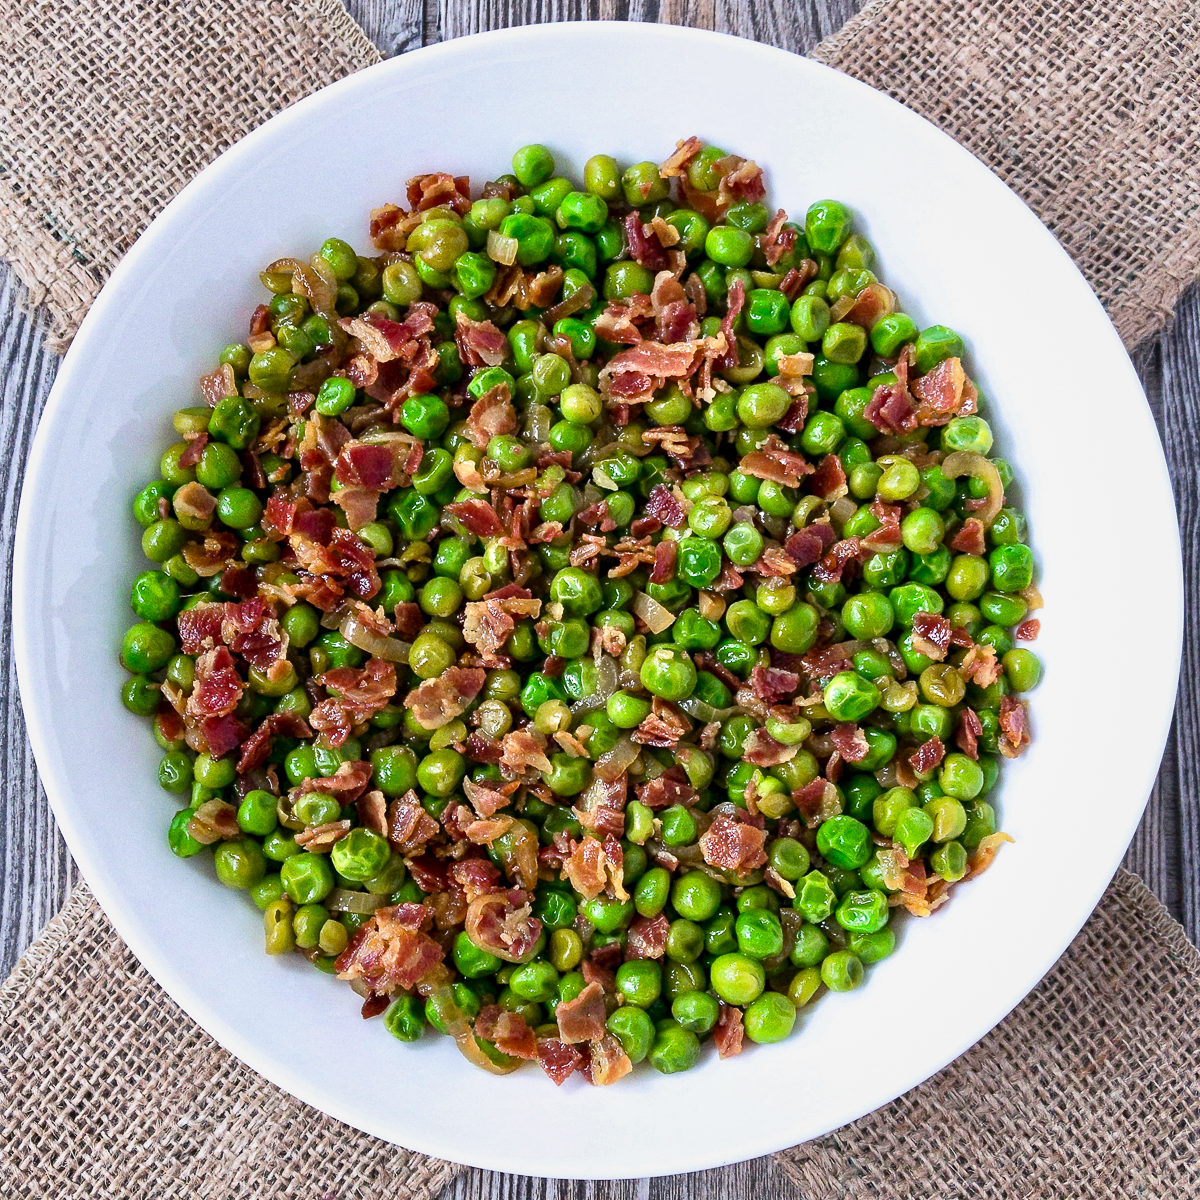 Peas and pancetta in a white bowl.